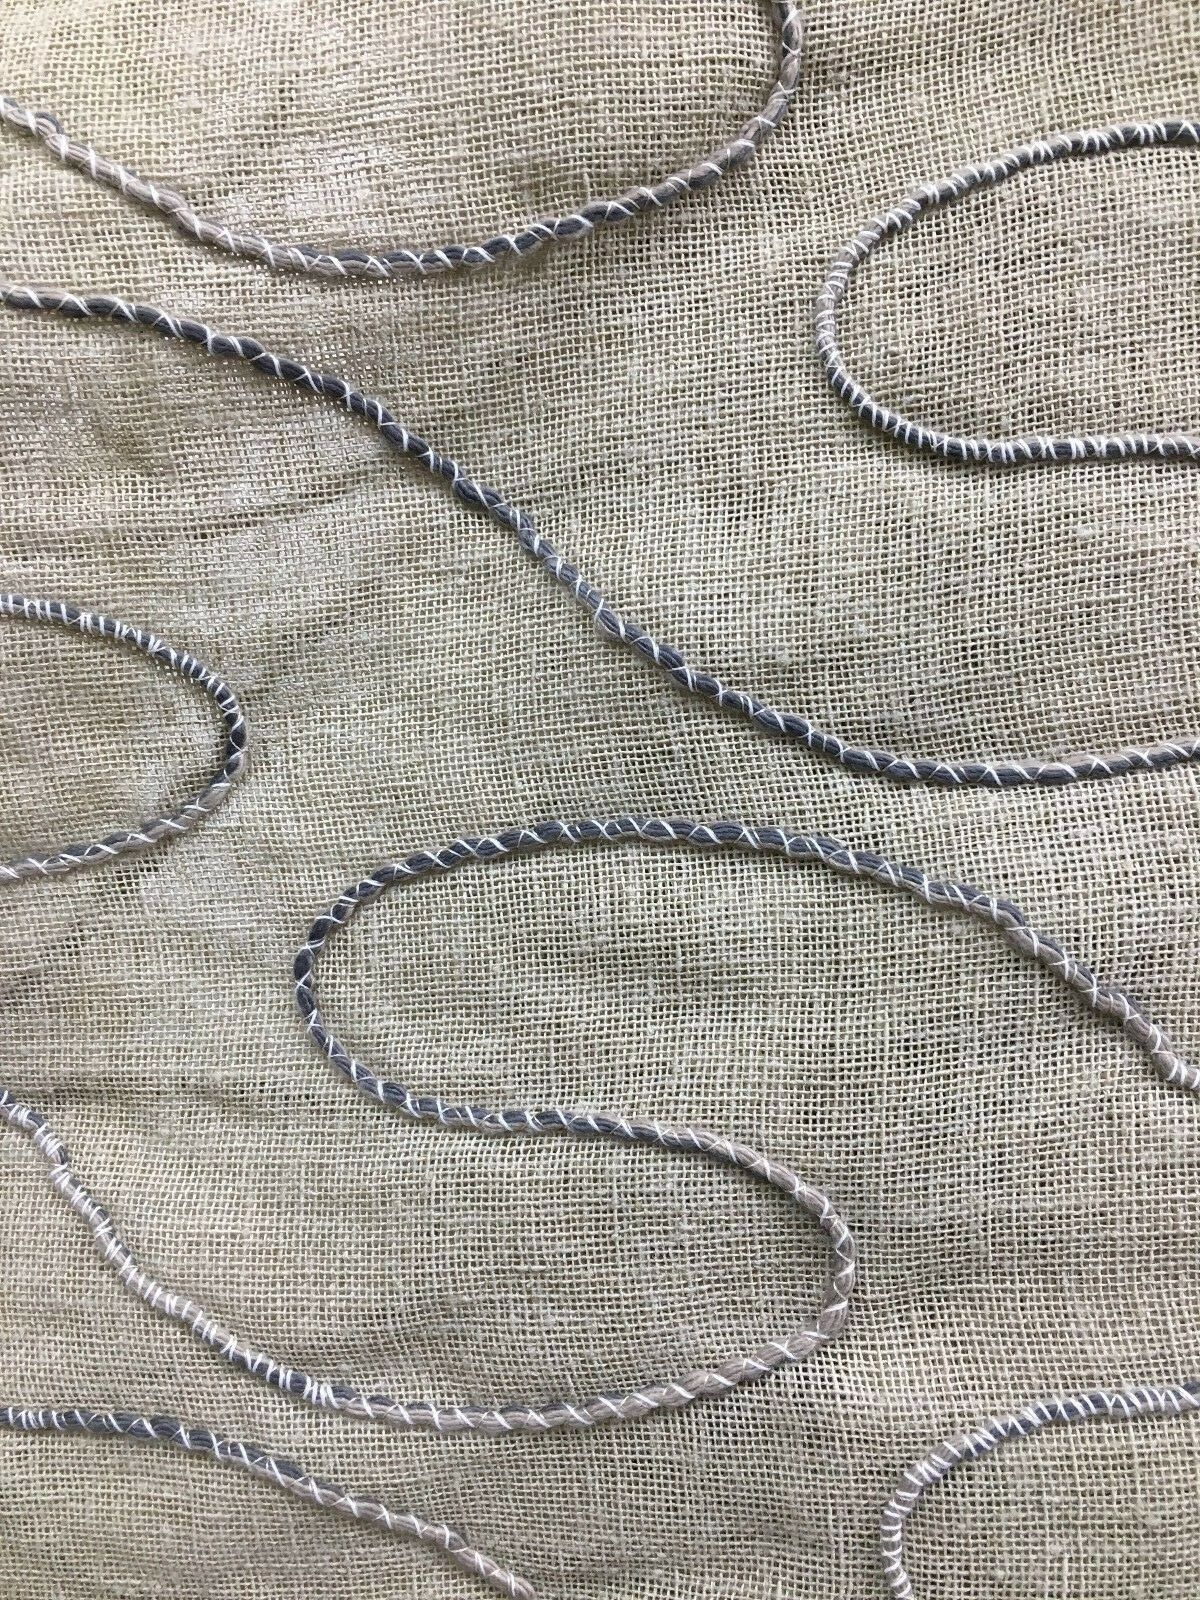 Natural Beige Embroidered Linen Drapery Fabric 110 In Sold Bty 1 Of 8 See More